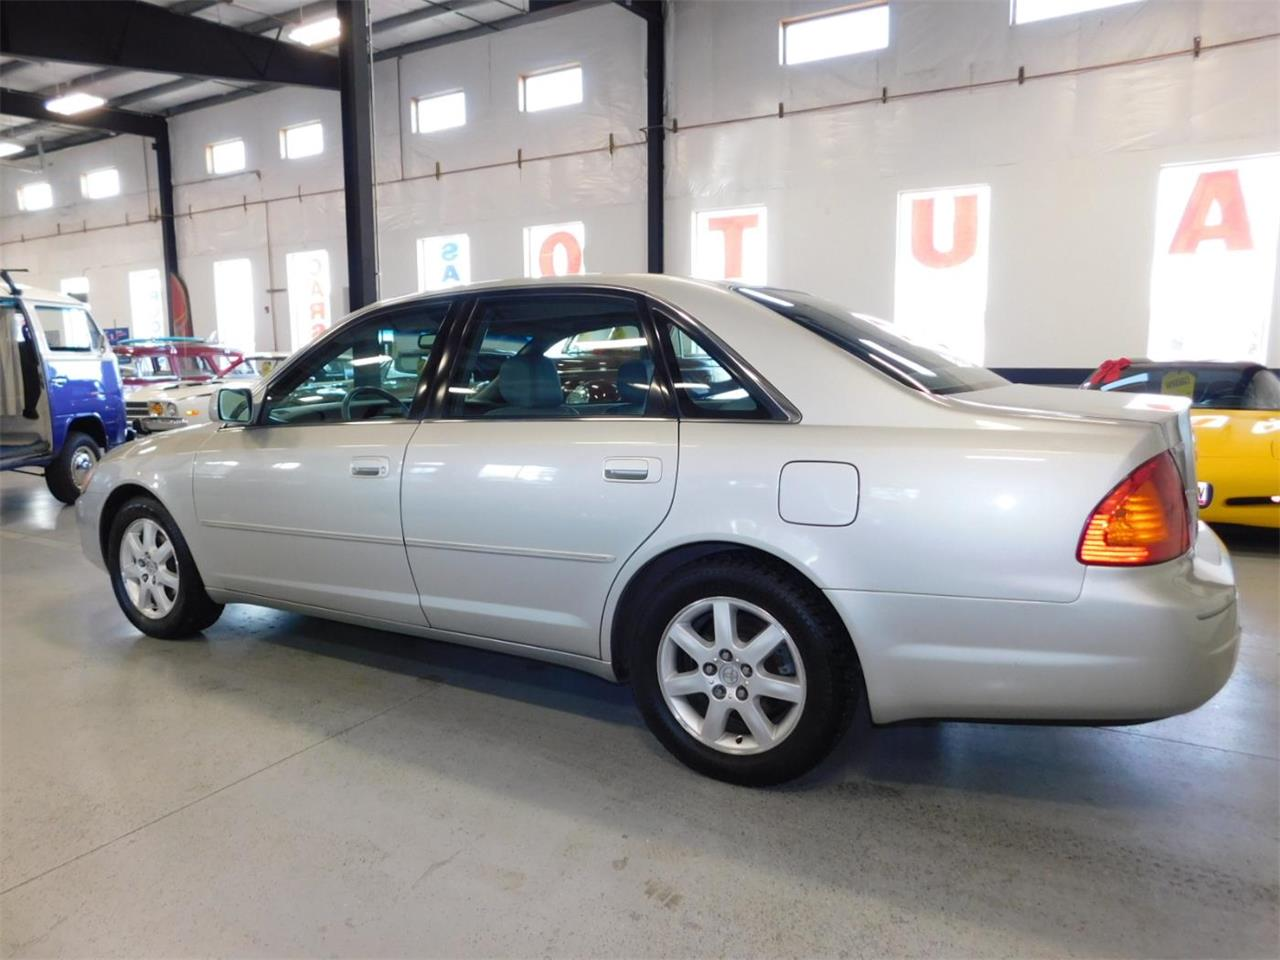 Large Picture of '02 Toyota Avalon located in Bend Oregon - $4,995.00 - MO09